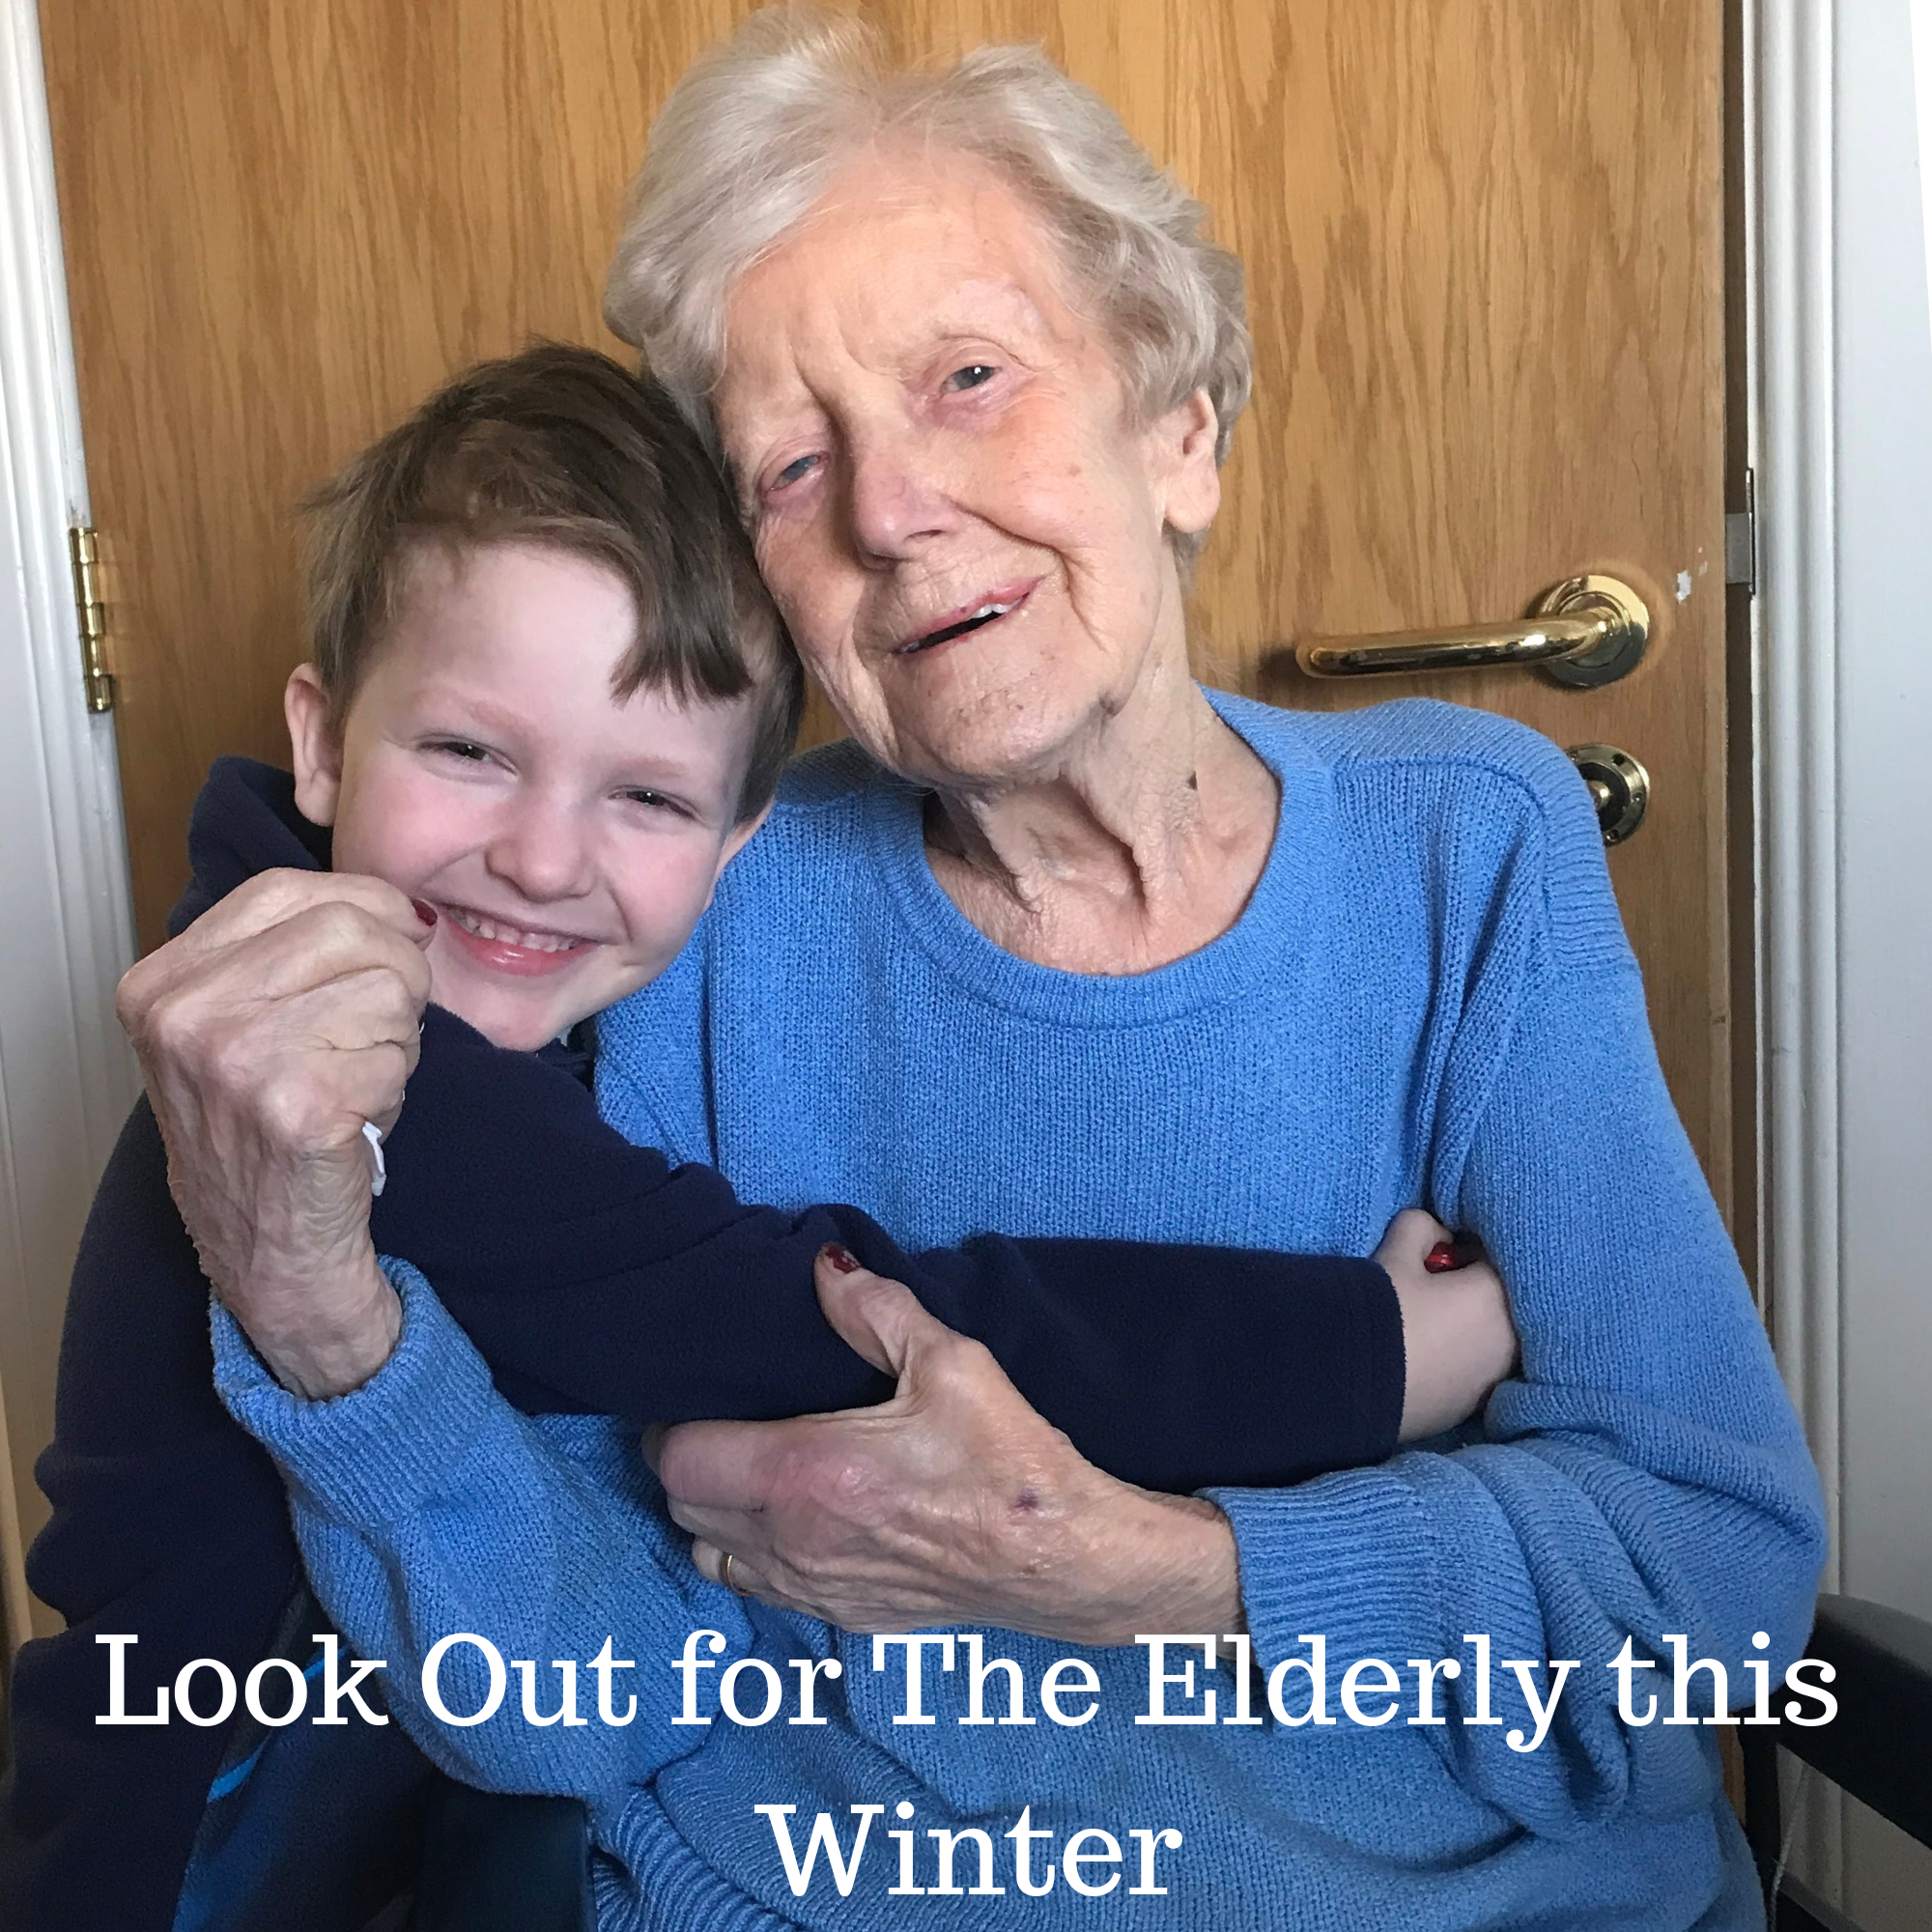 Look Out for The Elderly this Winter